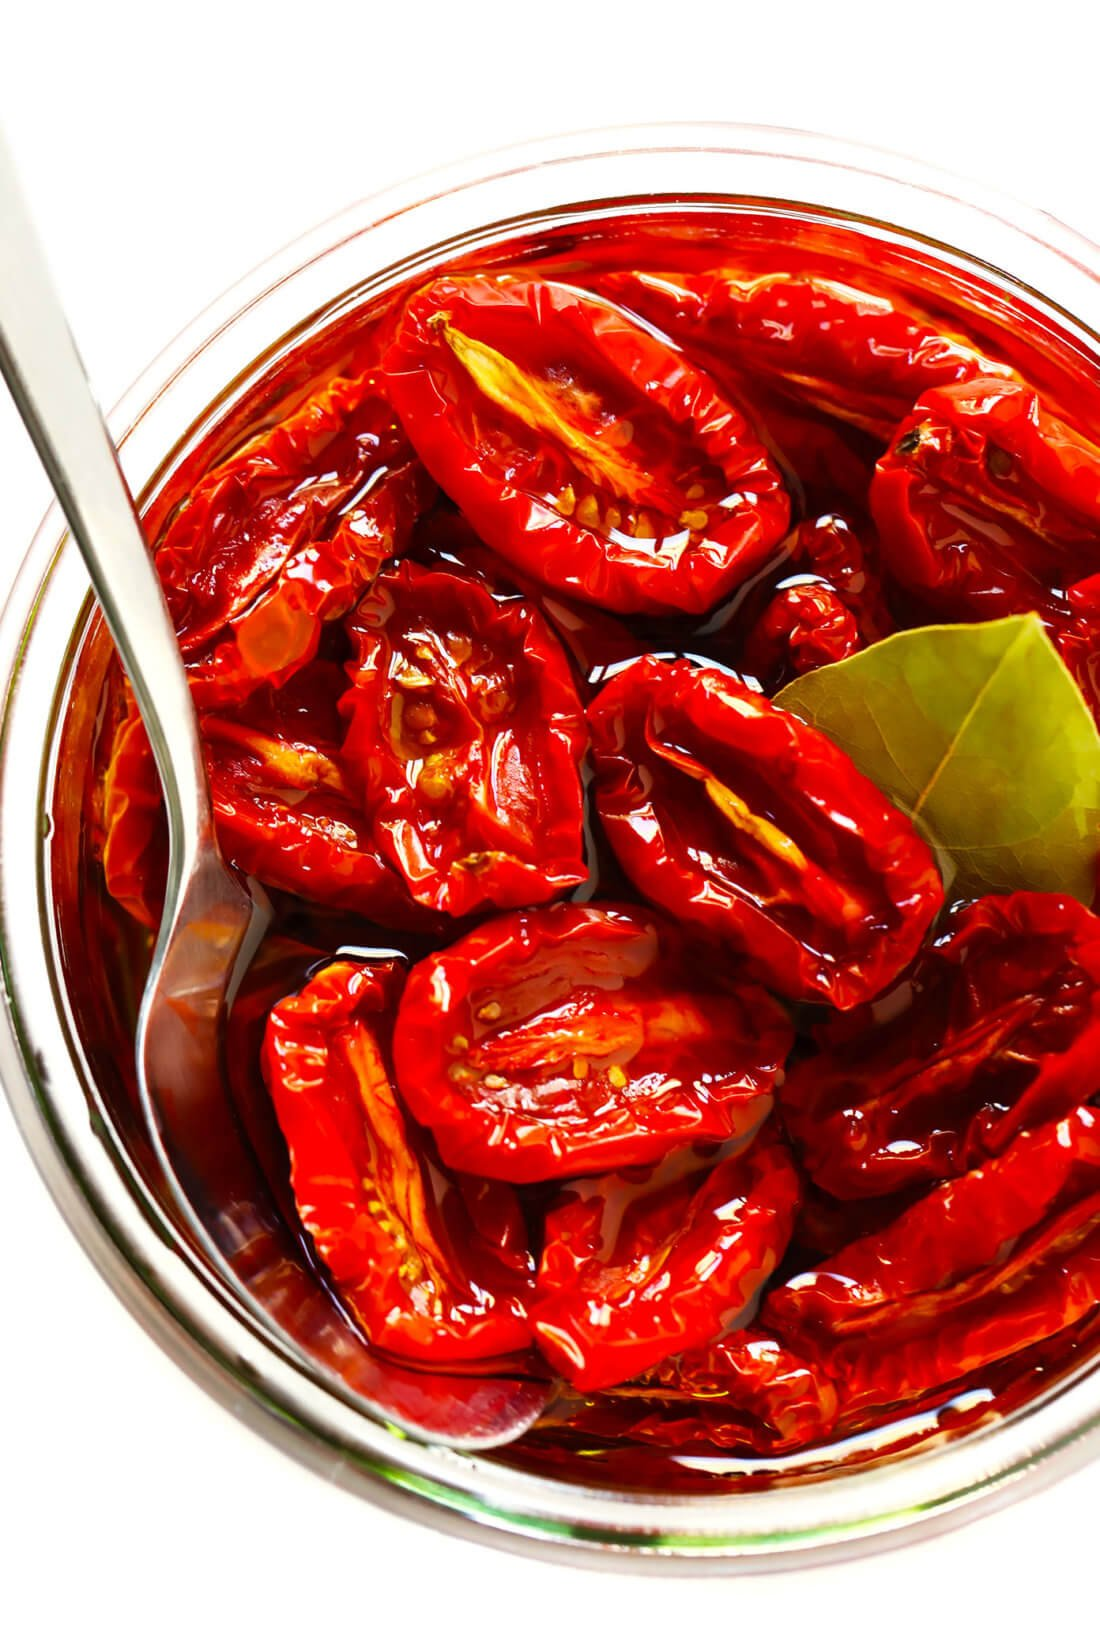 Homemade Sun-Dried Tomatoes in Olive Oil